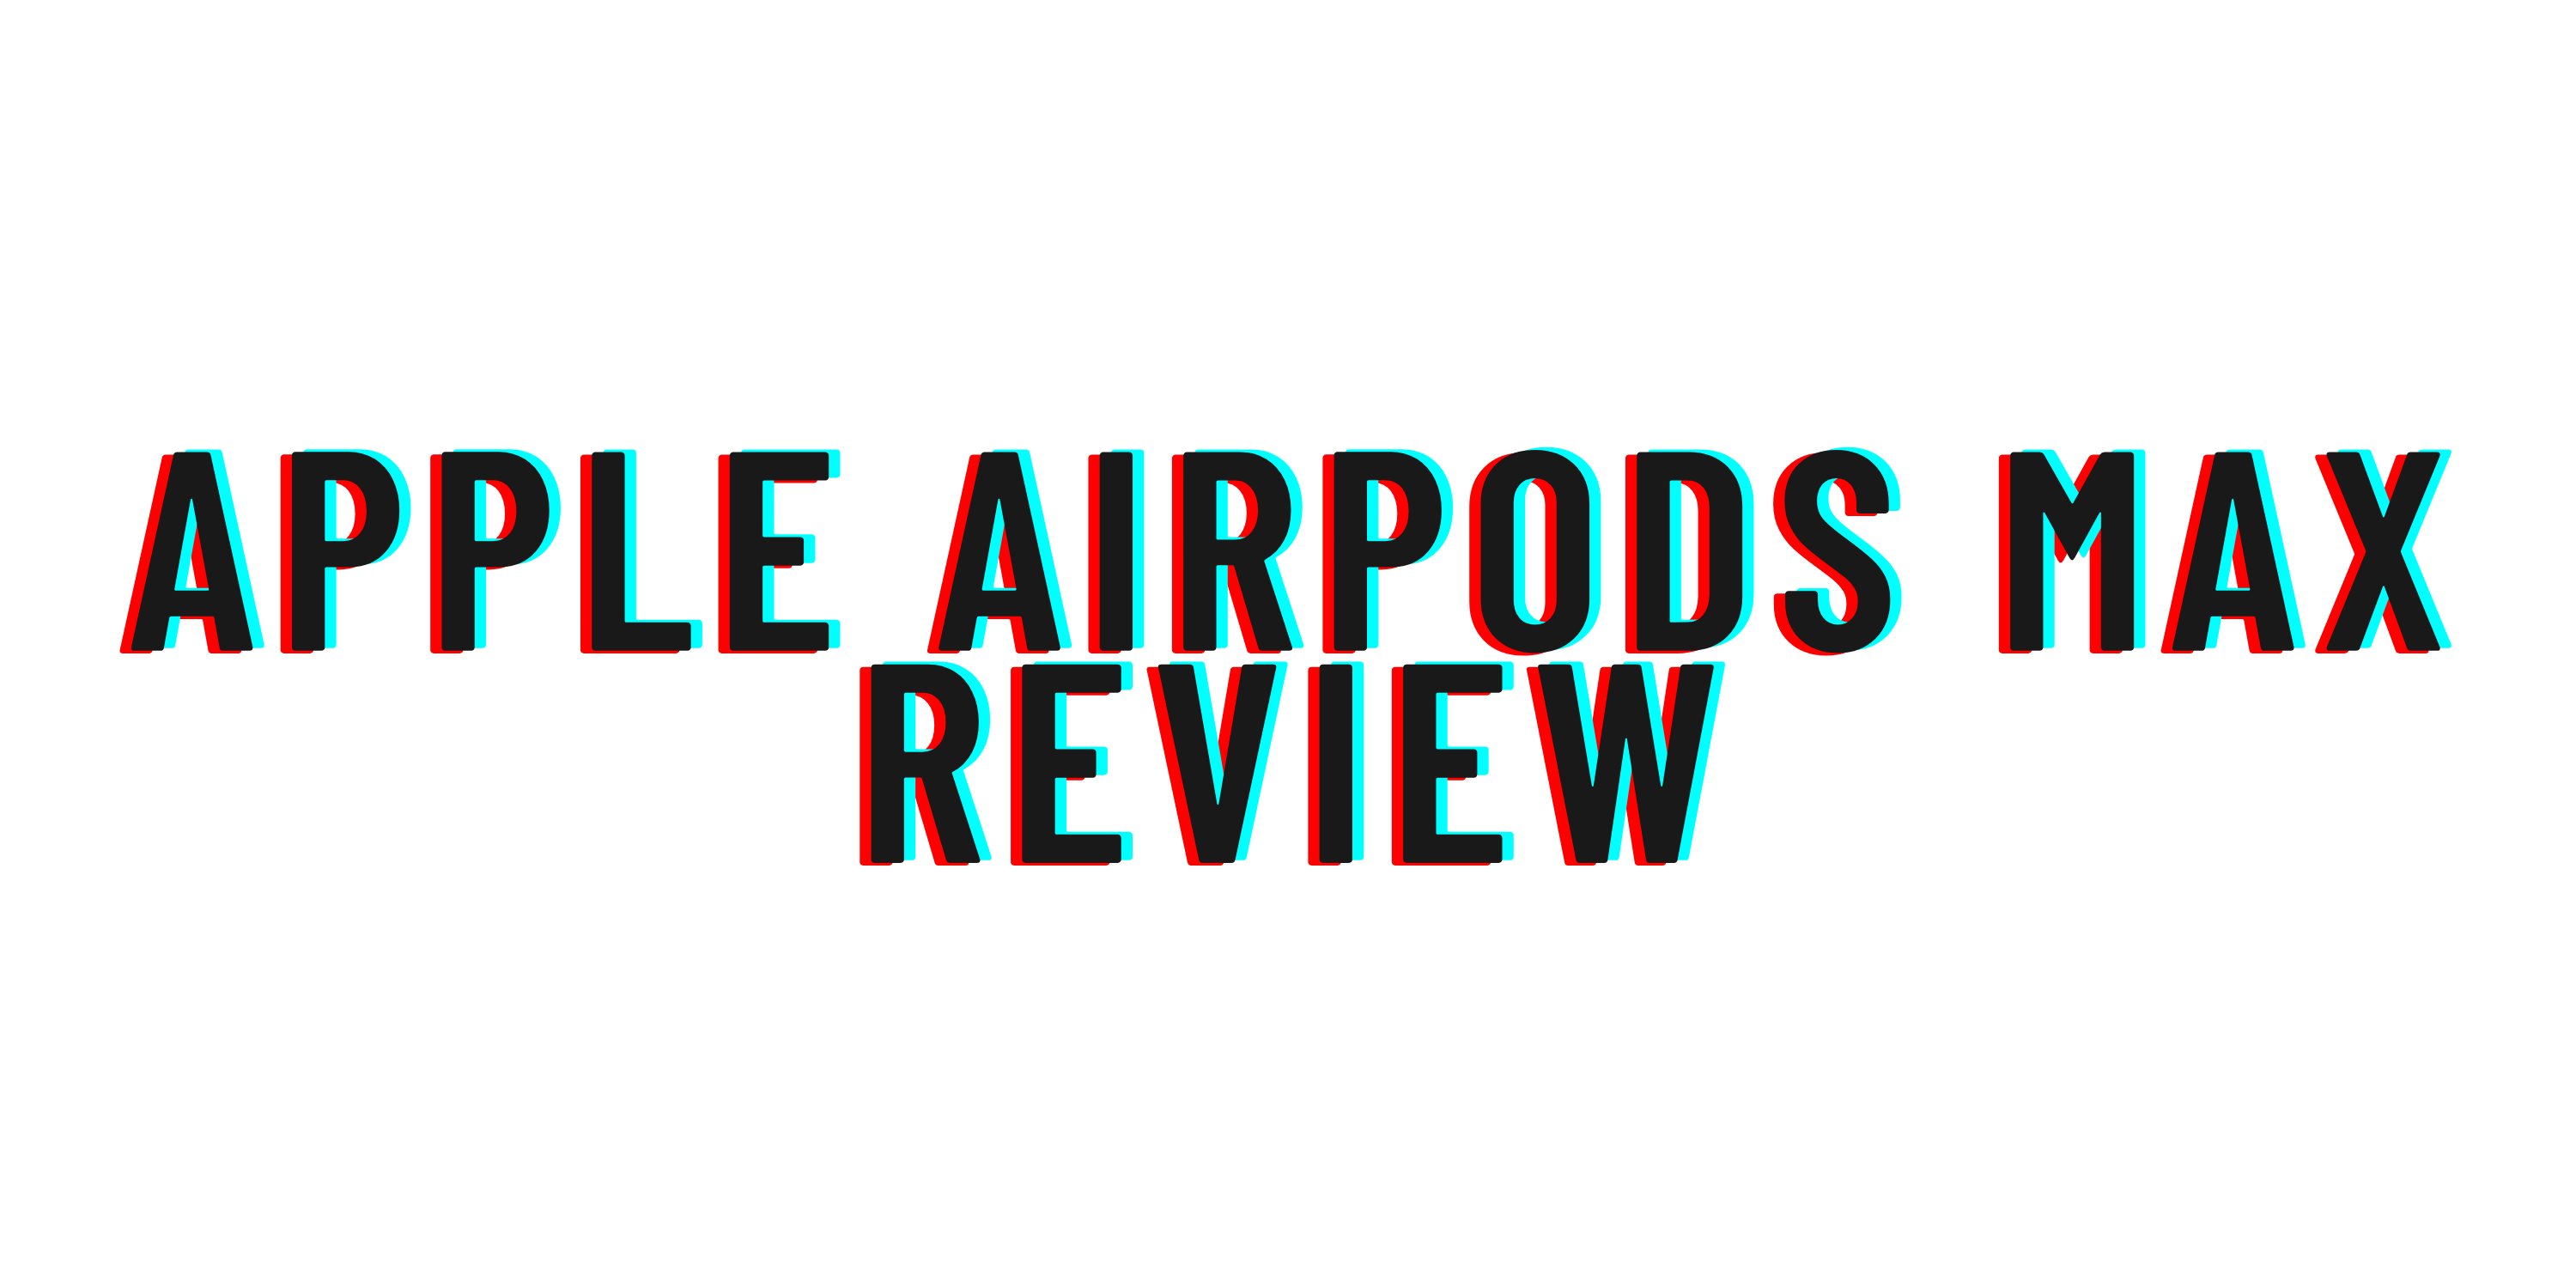 Apple AirPods Max review